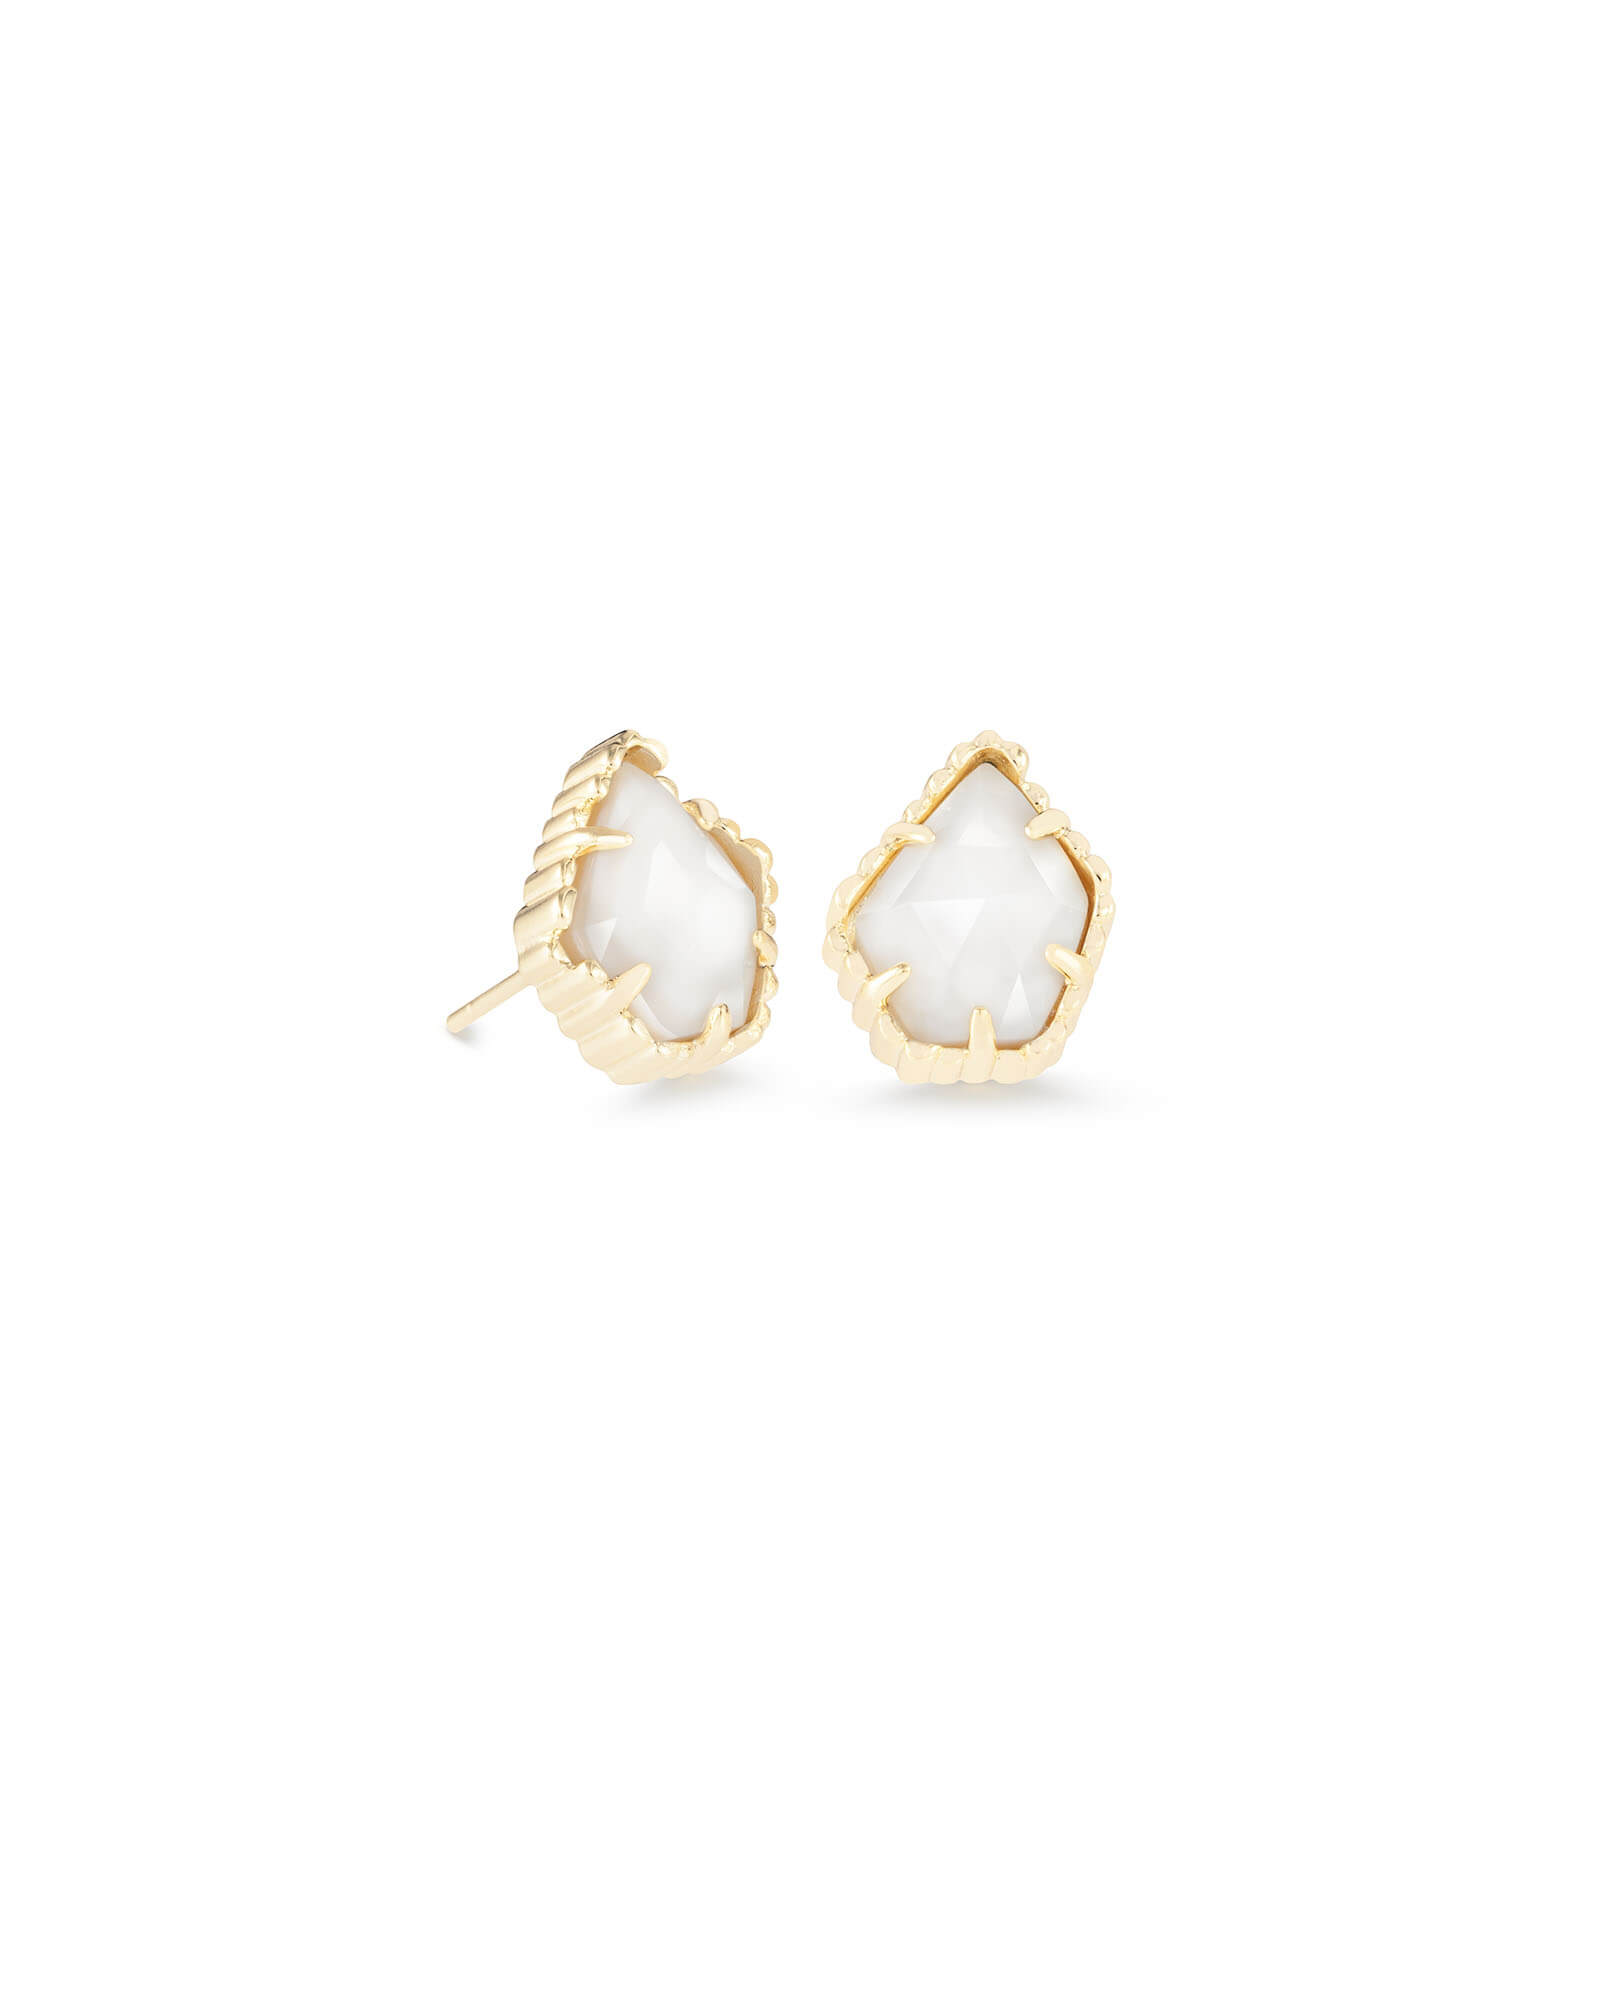 Tessa Gold Stud Earrings in White Pearl